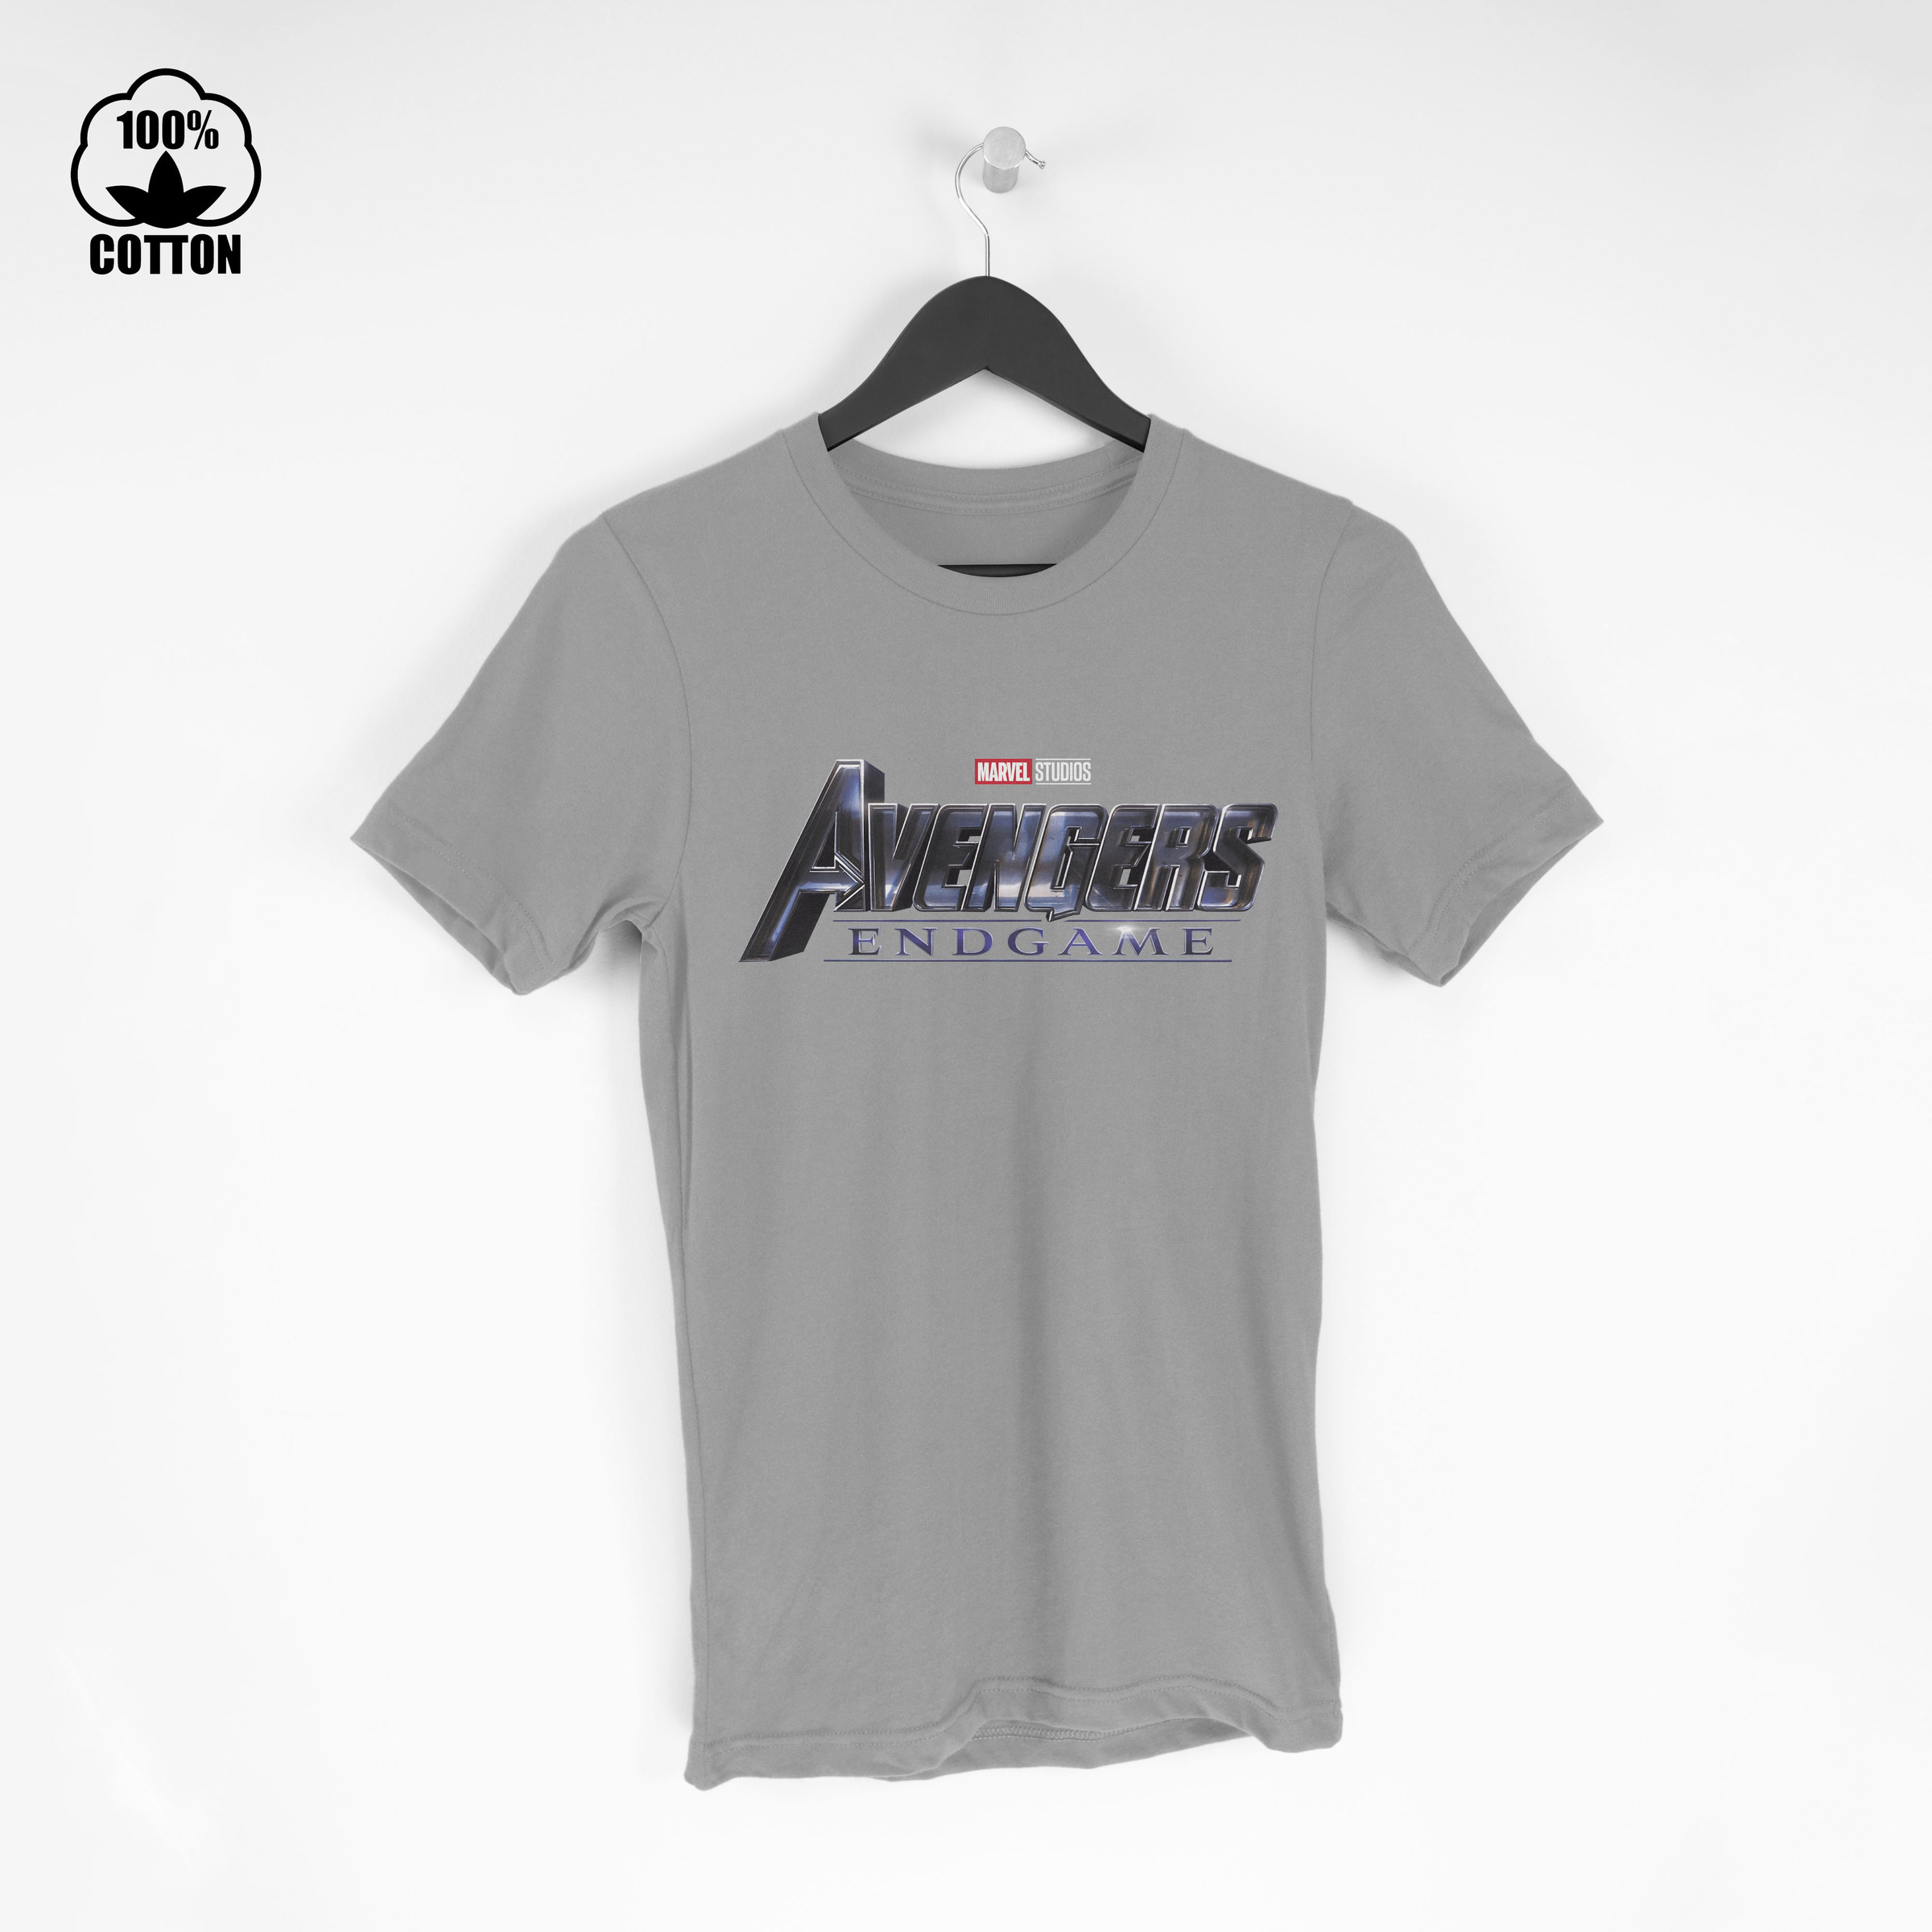 AF22_AVENGERS THE END GAME T-SHIRT Limited Edition 4.jpg